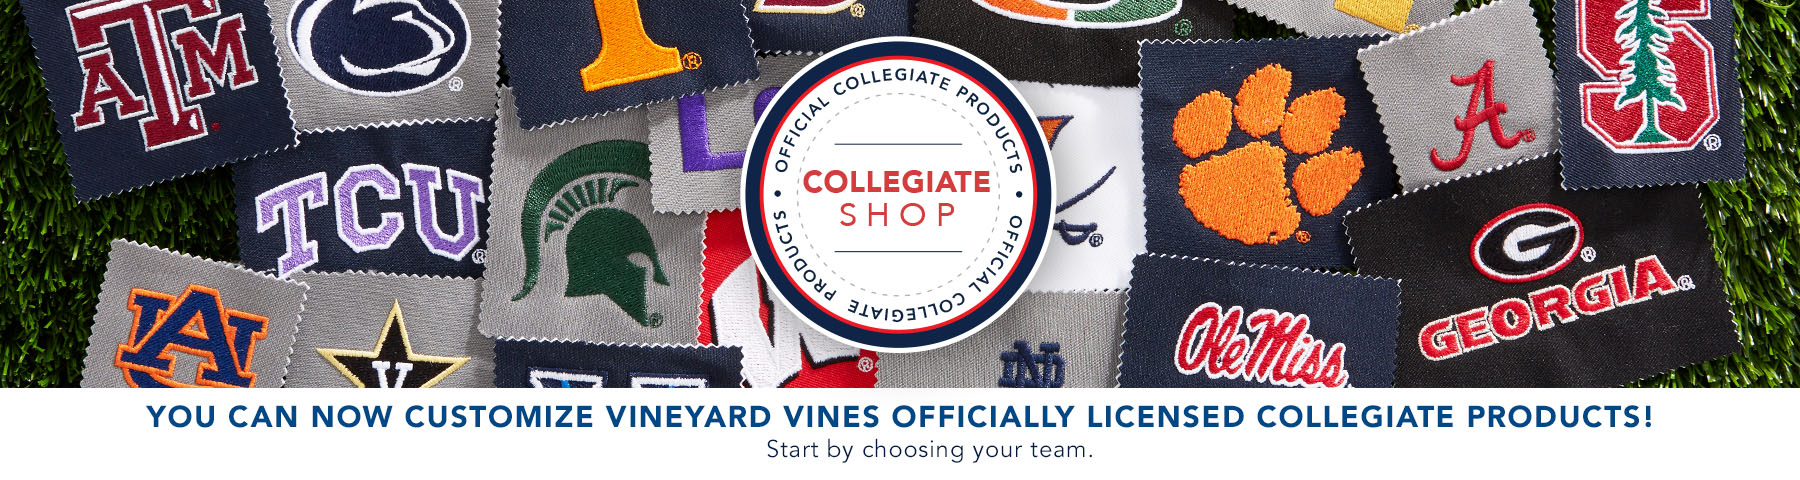 9436f7988 You can now customize vineyard vines officially licensed Collegiate products!  Start by choosing your team